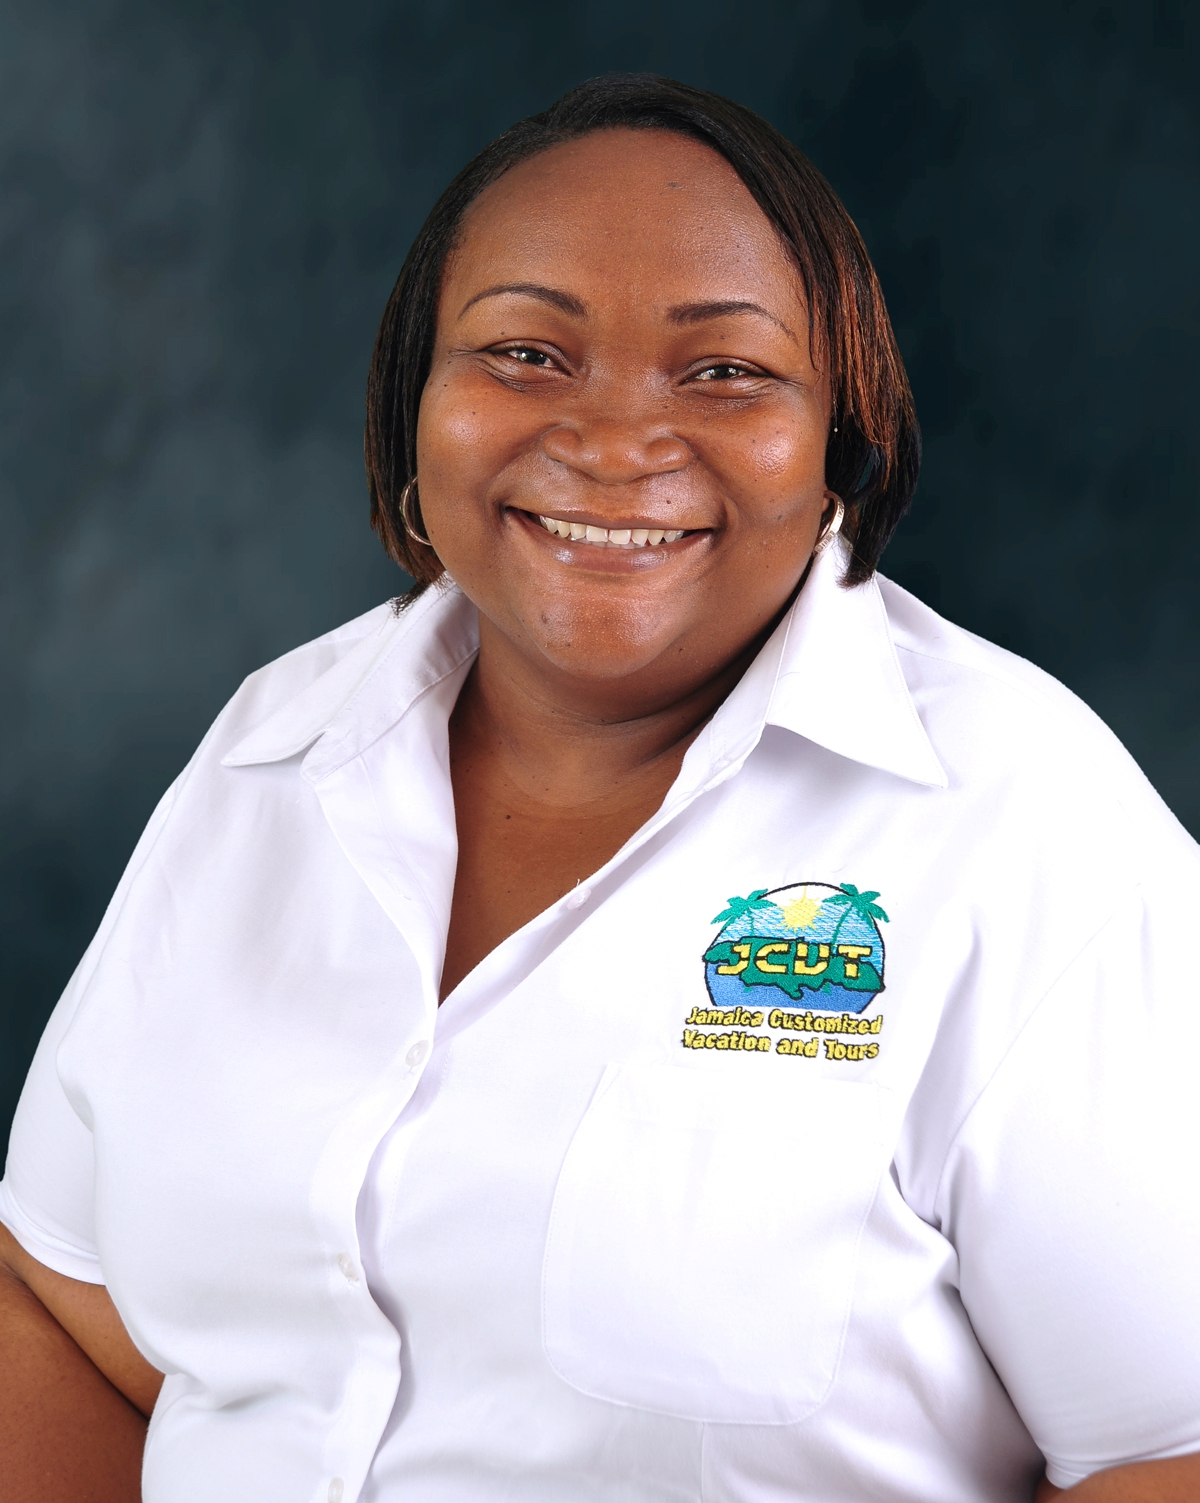 Jamaica Customised Vacation and Tours Manager